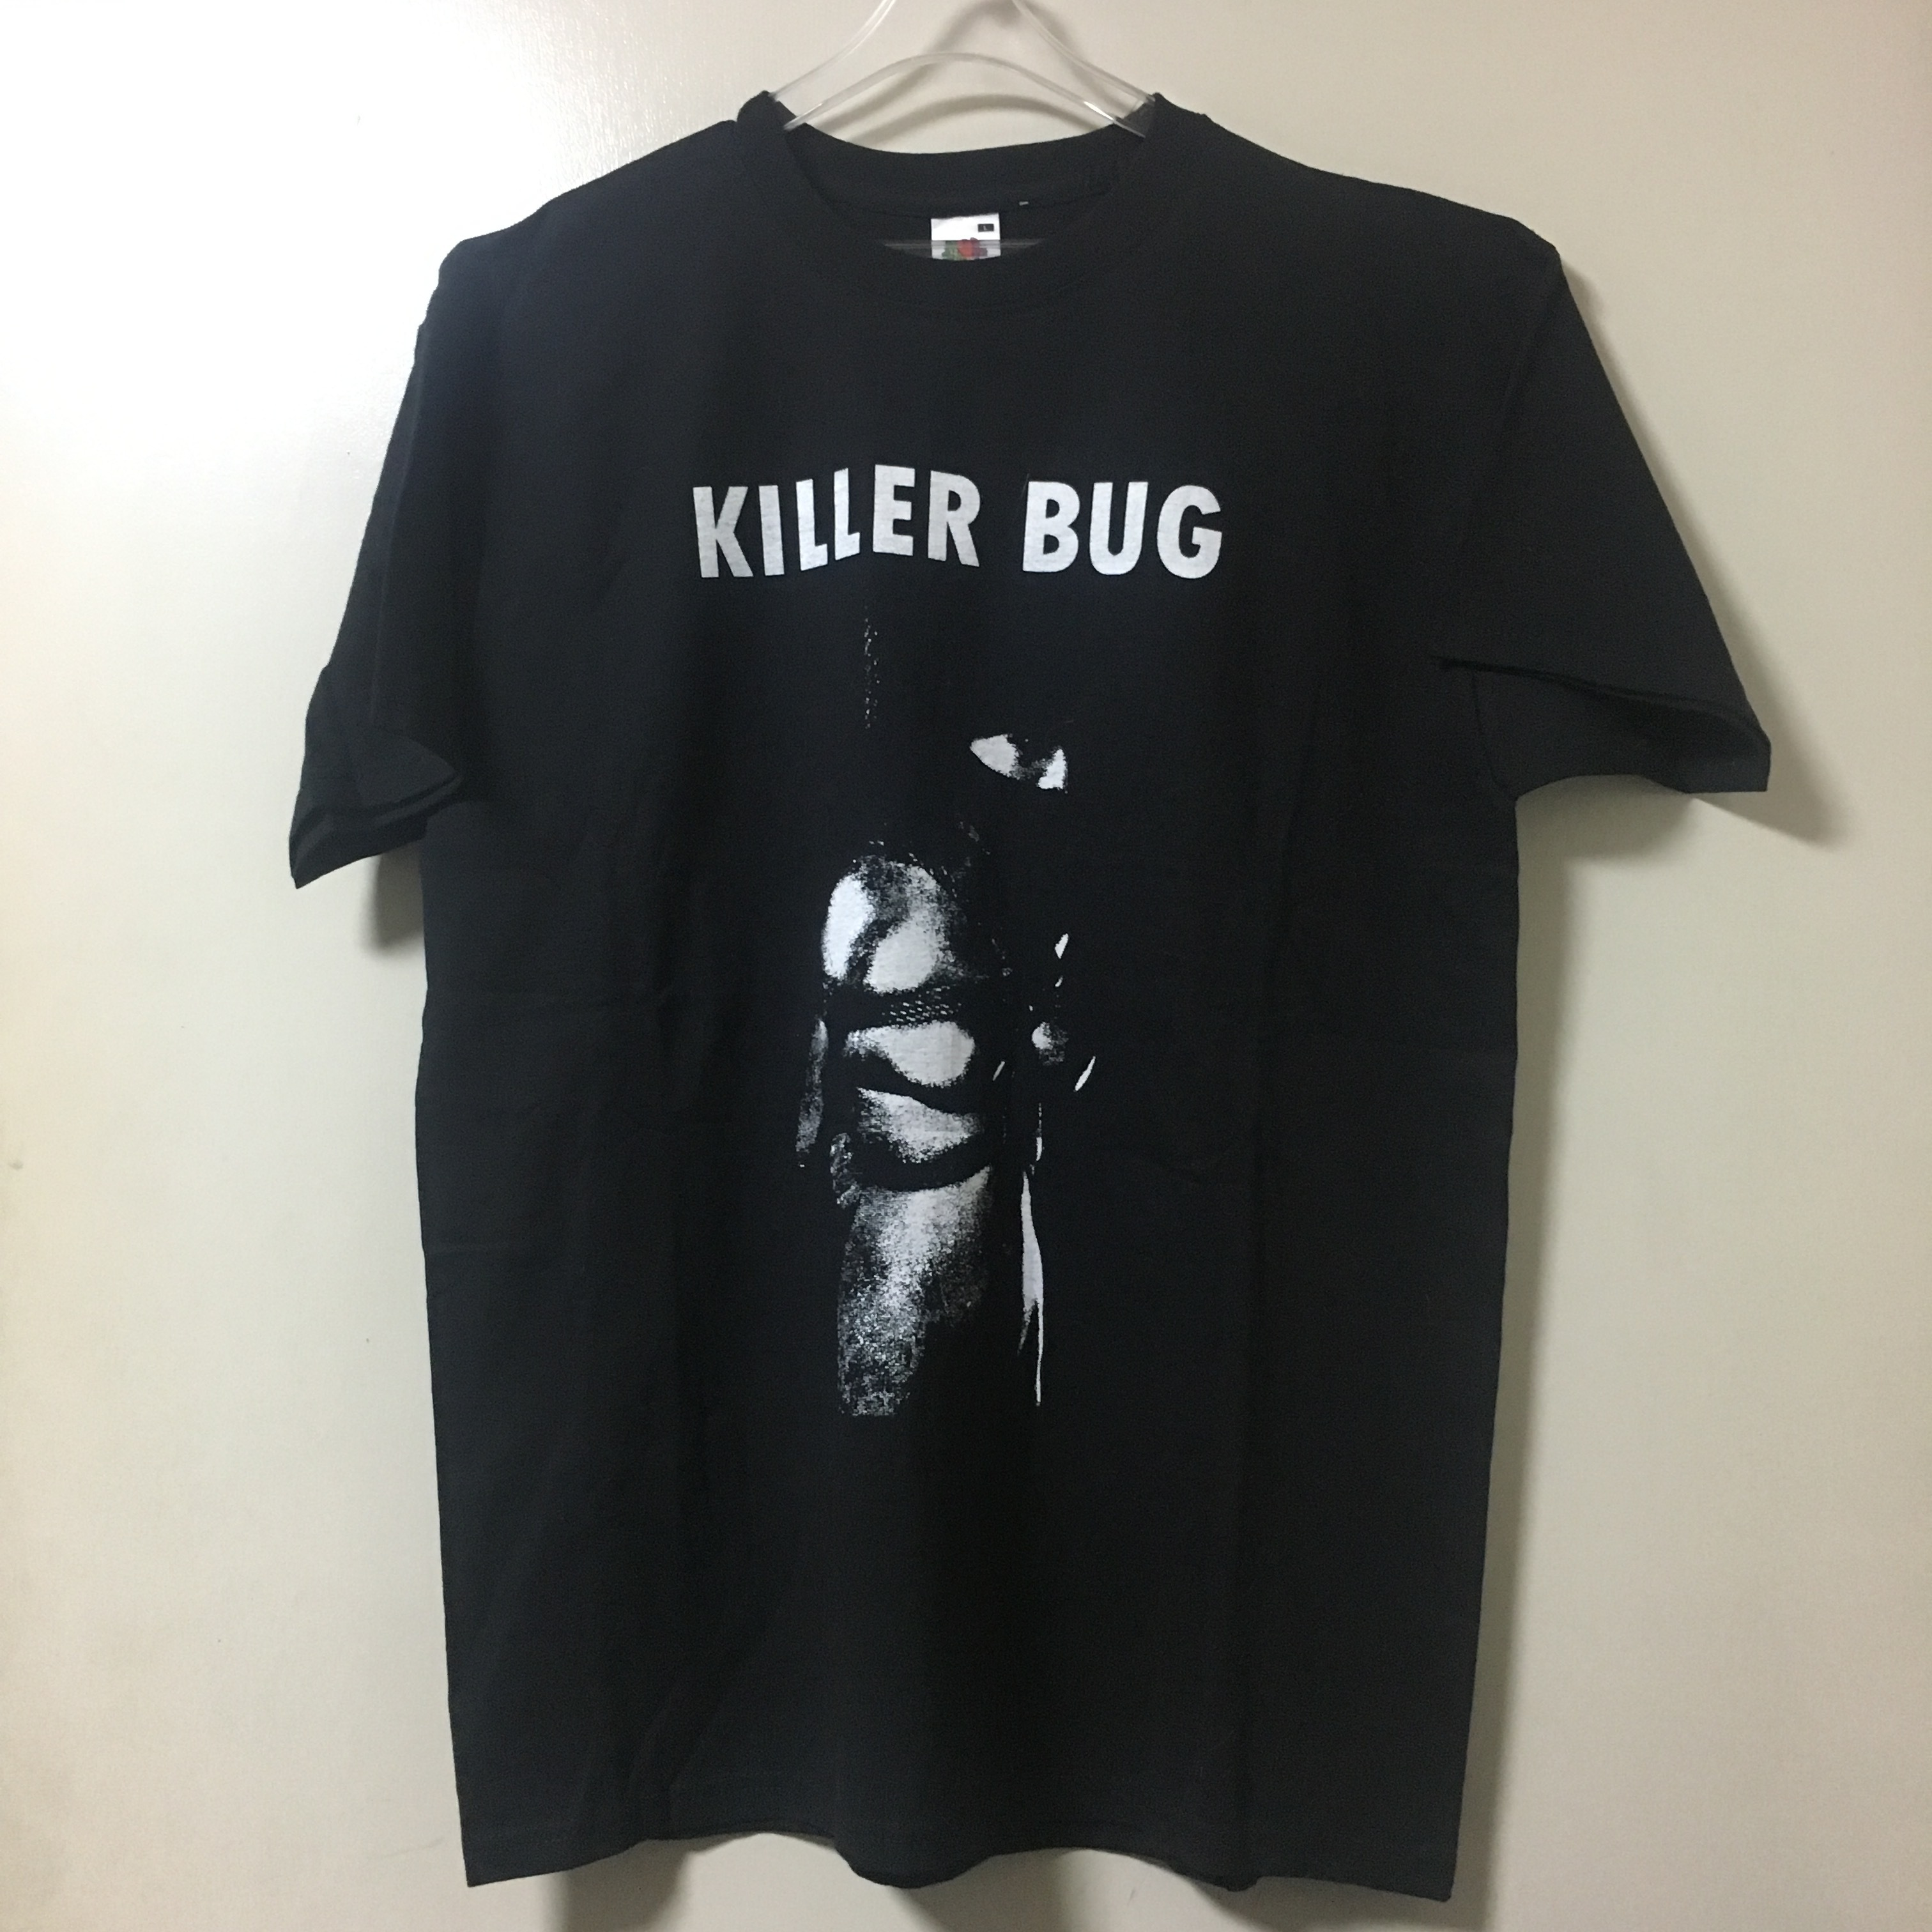 Killer Bug -Steaming Gash (T-shirt)